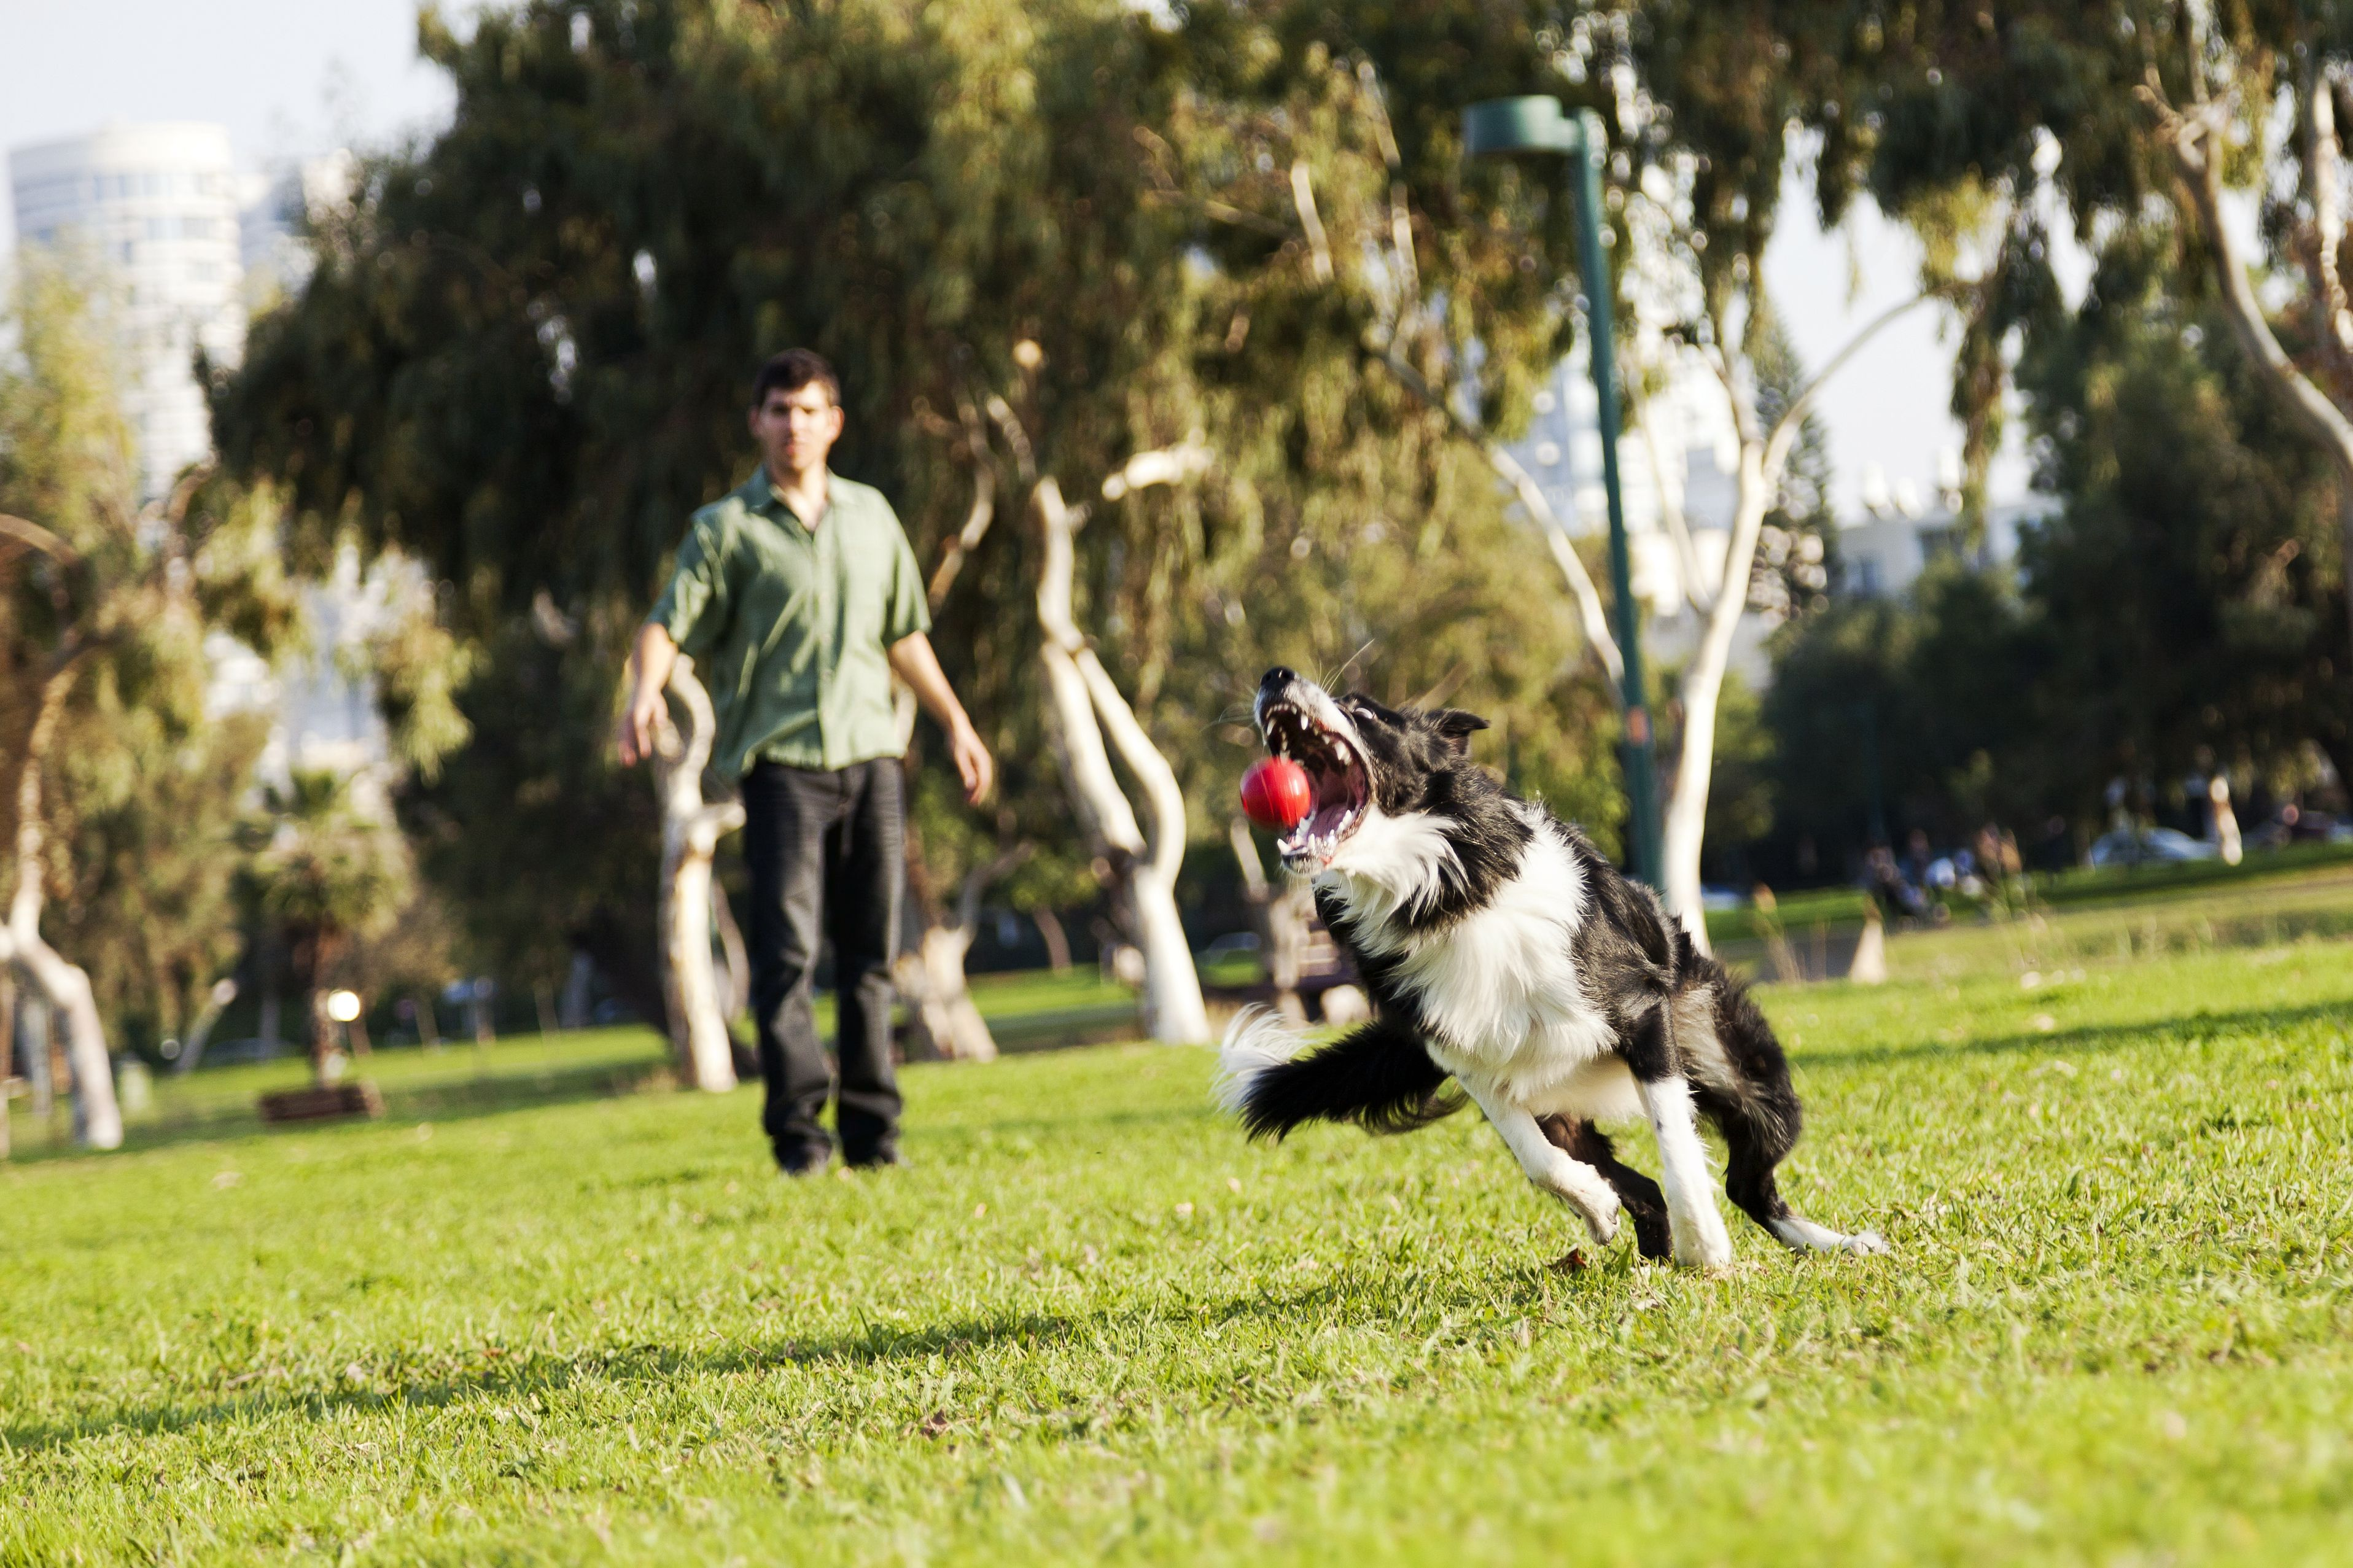 19297311 - a border collie dog caught in the middle of catching a red rubber ball, on a sunny day at an urban park  his owner can be seen observing the action from the background